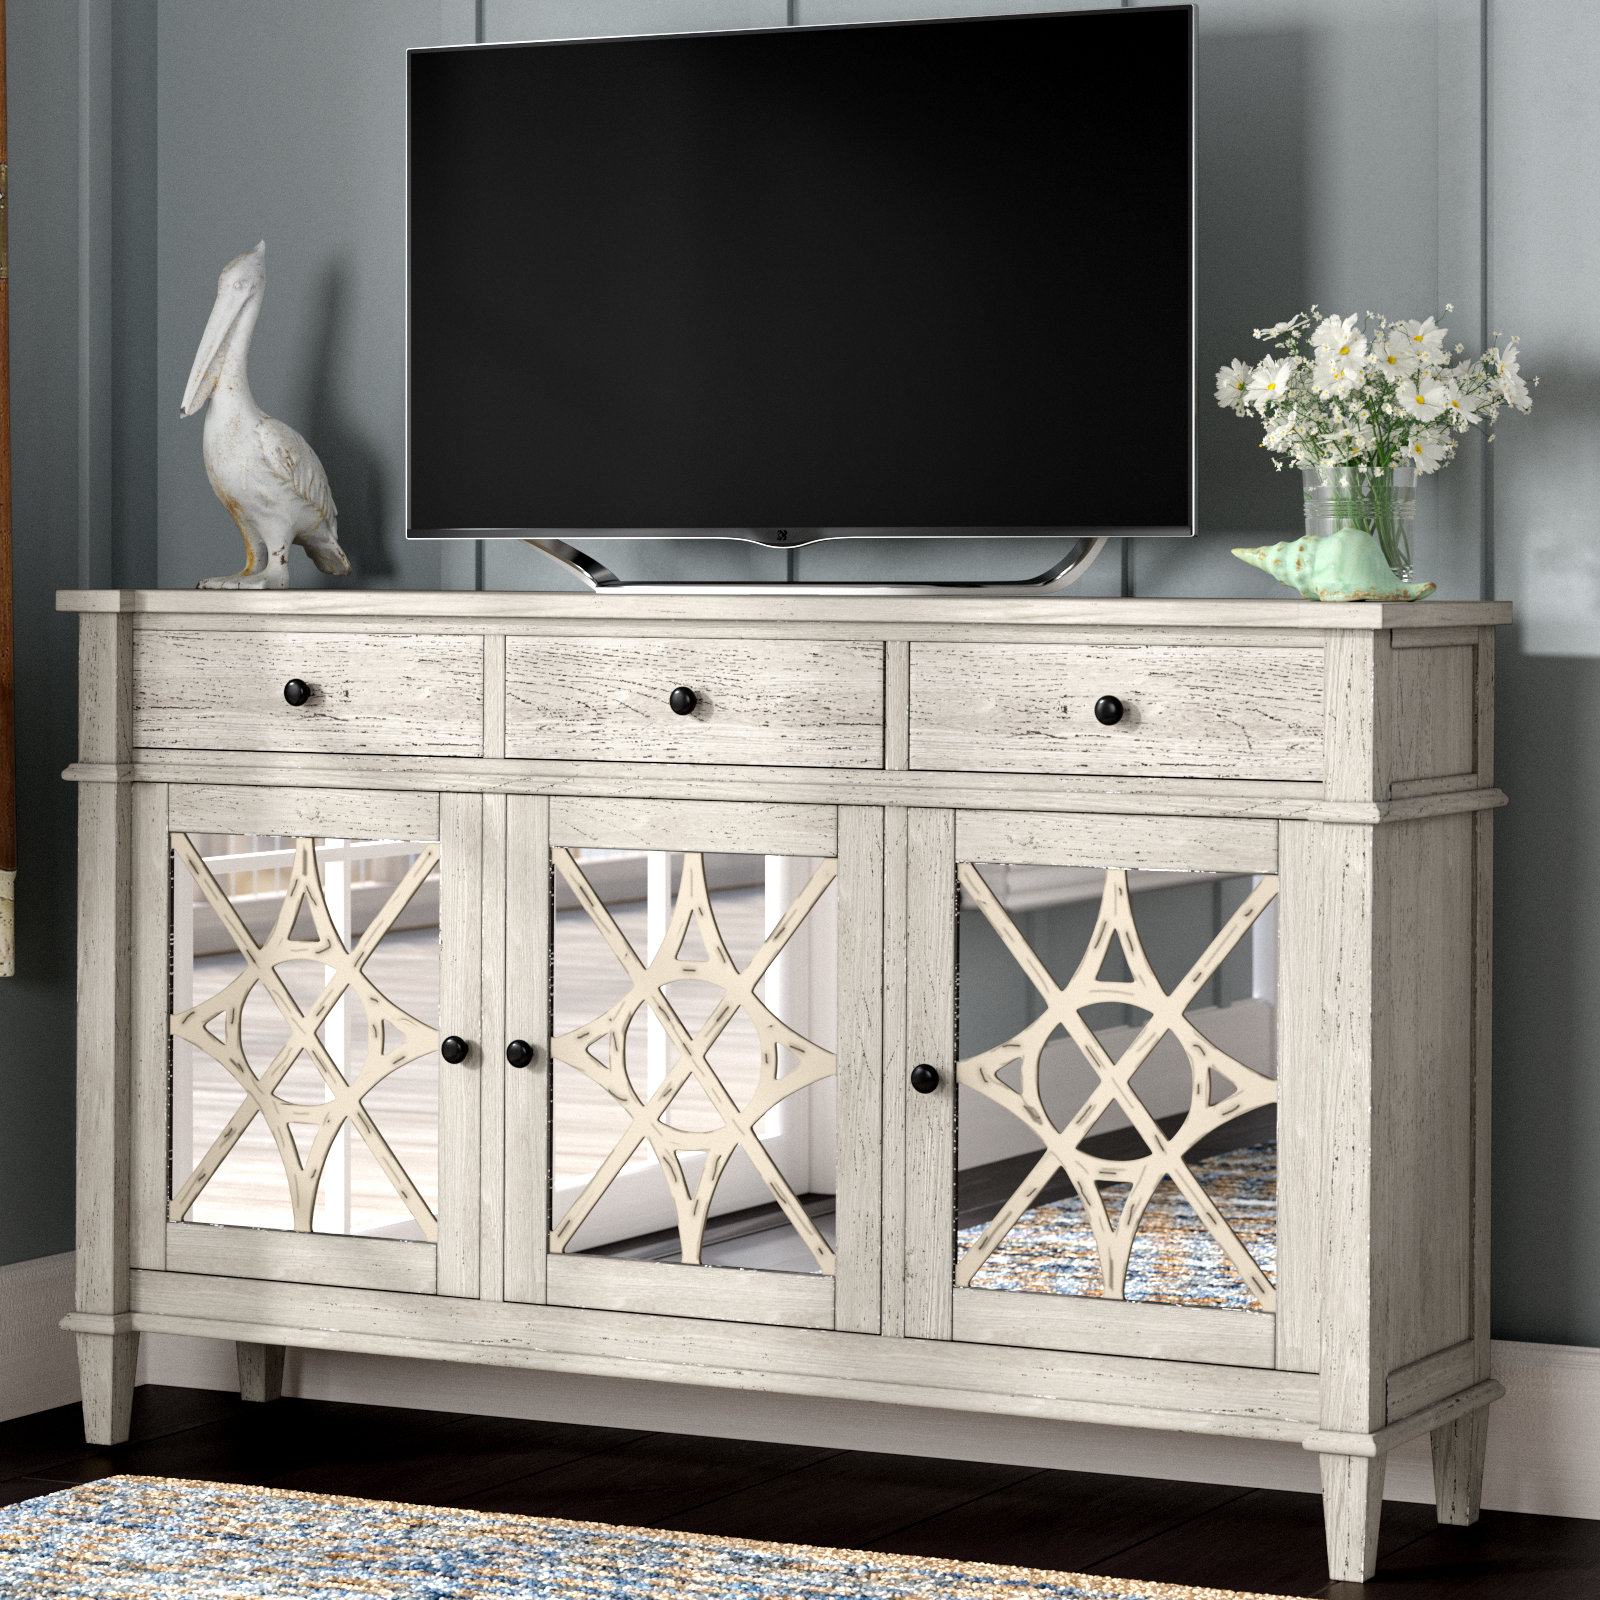 "Farmhouse & Rustic Rosecliff Heights Tv Stands | Birch Lane inside Colefax Vintage Tv Stands for Tvs Up to 78"" (Image 22 of 30)"